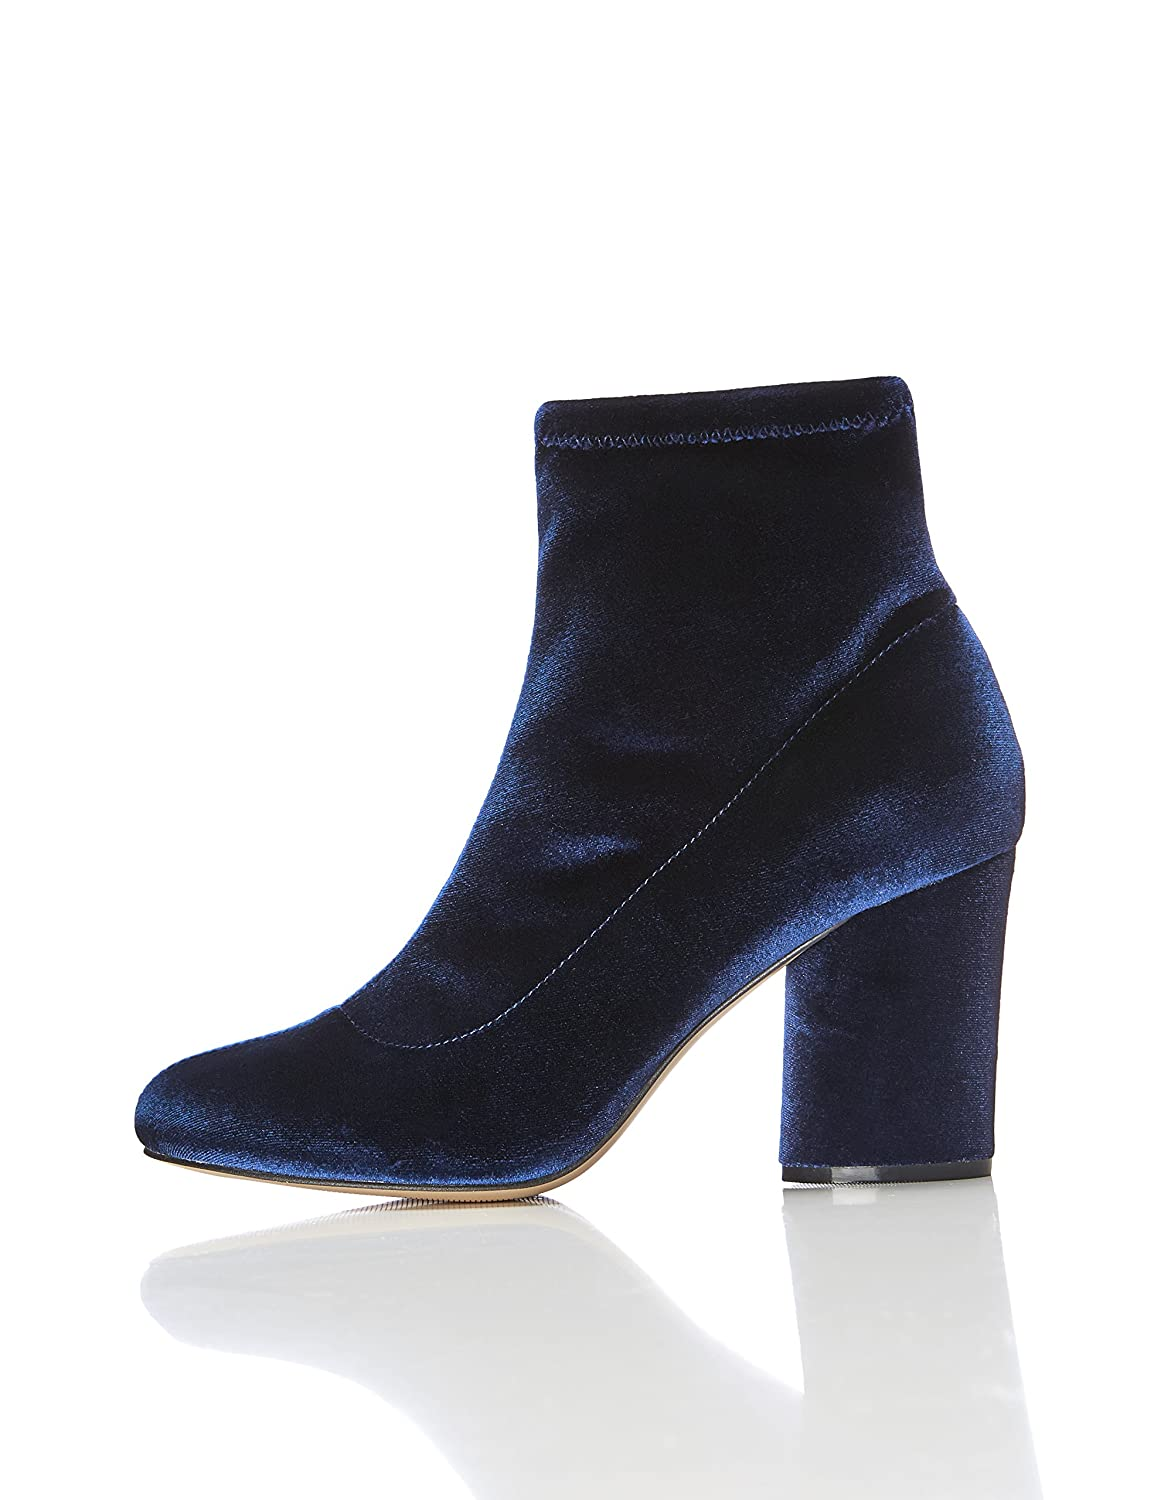 FIND NIKO, Bottines Bottines Femme 19805 Bleu FIND Marine 1baf460 - automaticcouplings.space